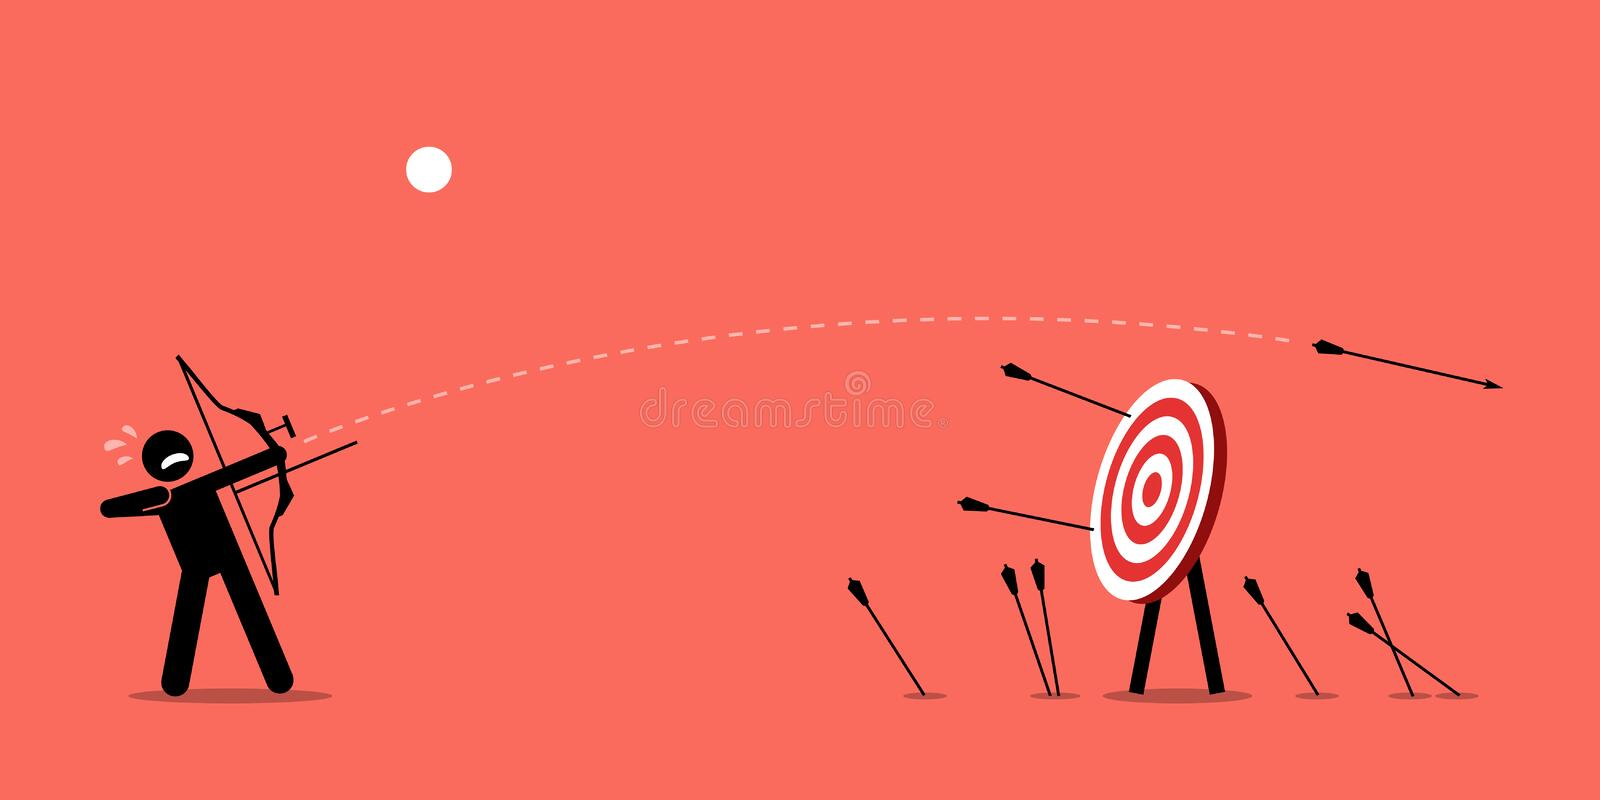 Failing to hit the target. Man desperately trying to shoot arrows with bow to hit the bullseye but failed miserably. Vector artwork depicts failure, inaccurate vector illustration